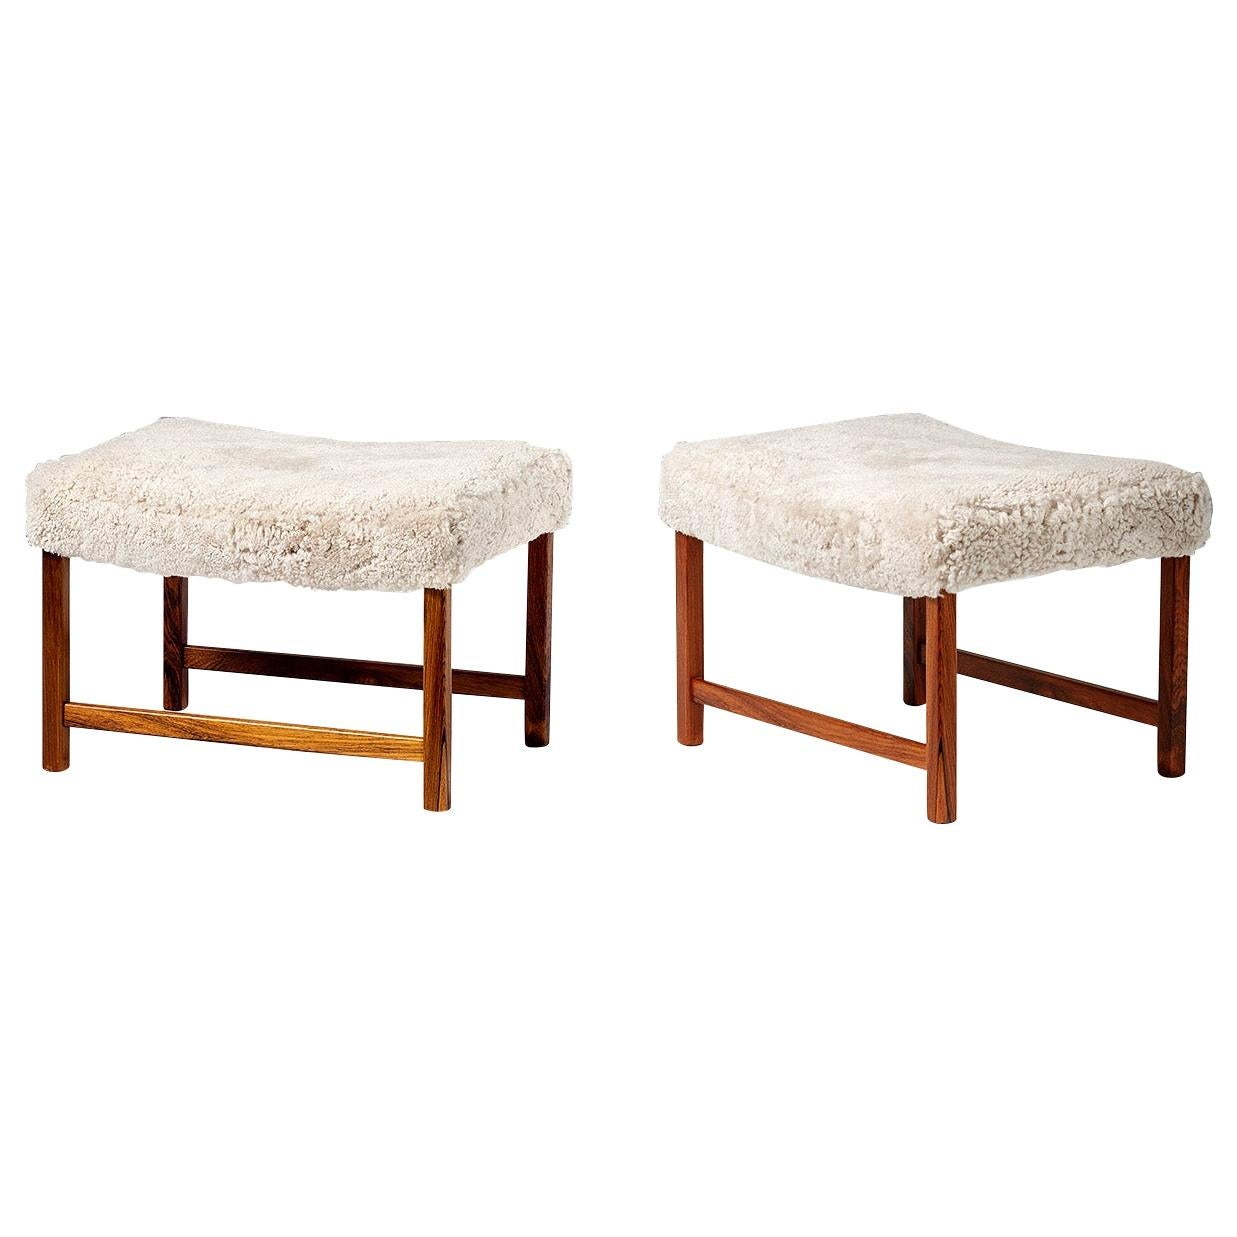 Pair of Ole Wanscher Rosewood Vintage Ottomans, circa 1950s